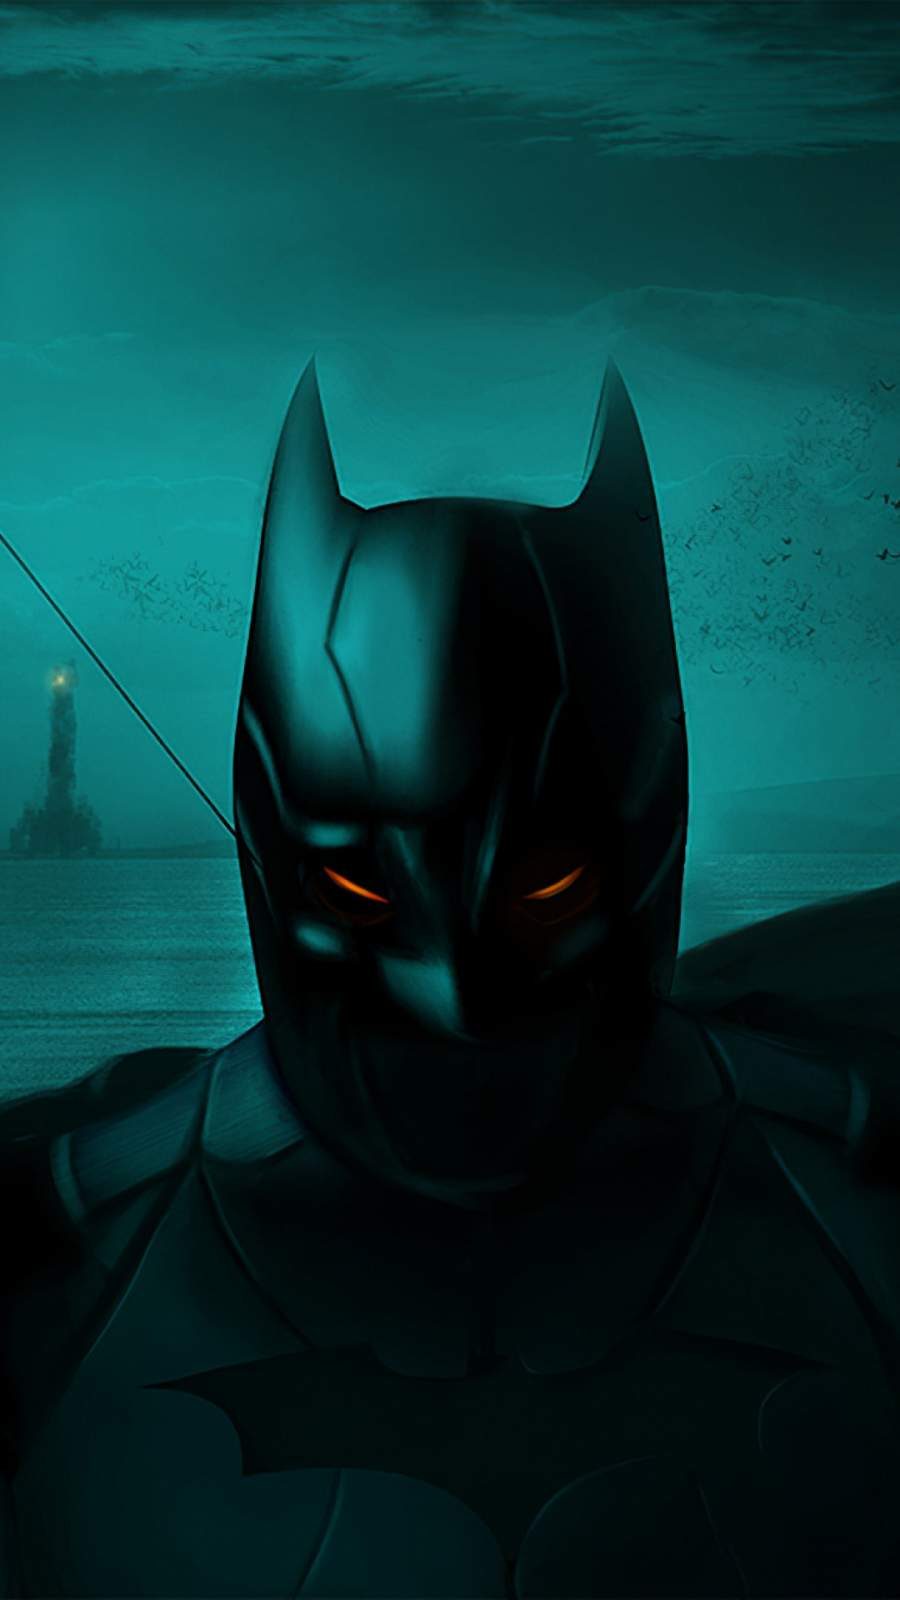 Batman Gotham City iPhone Wallpaper 1